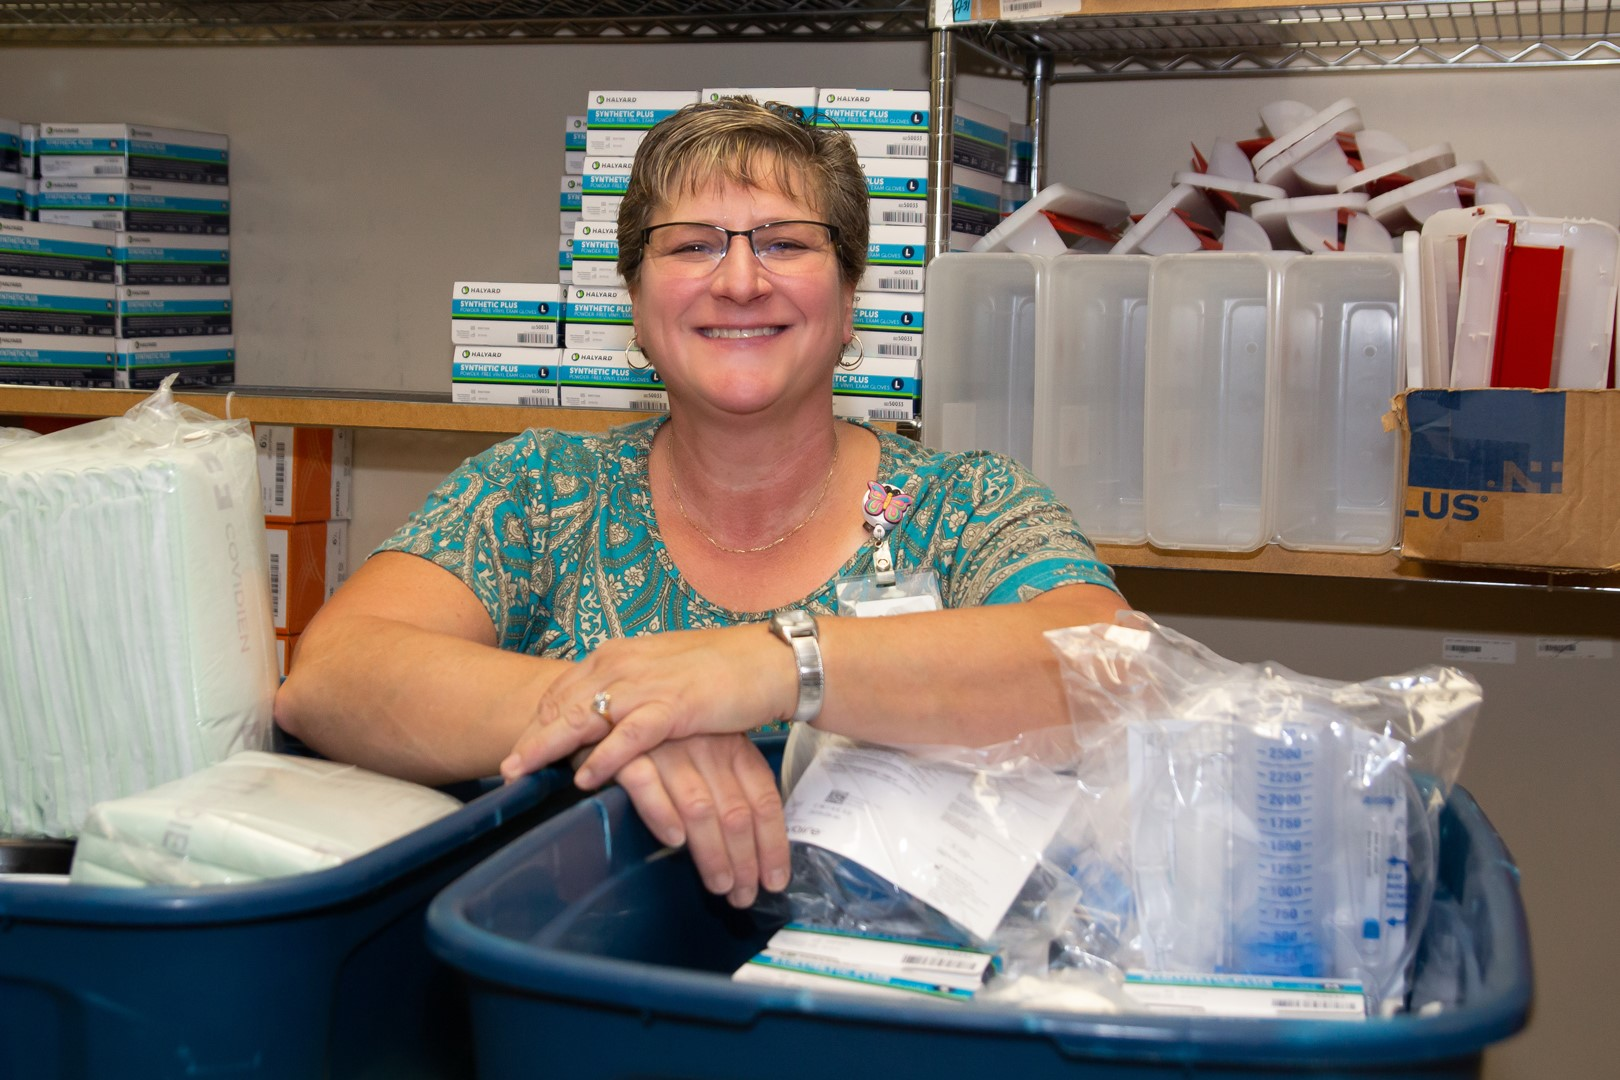 Employee Shout-Out: Coleen Williams